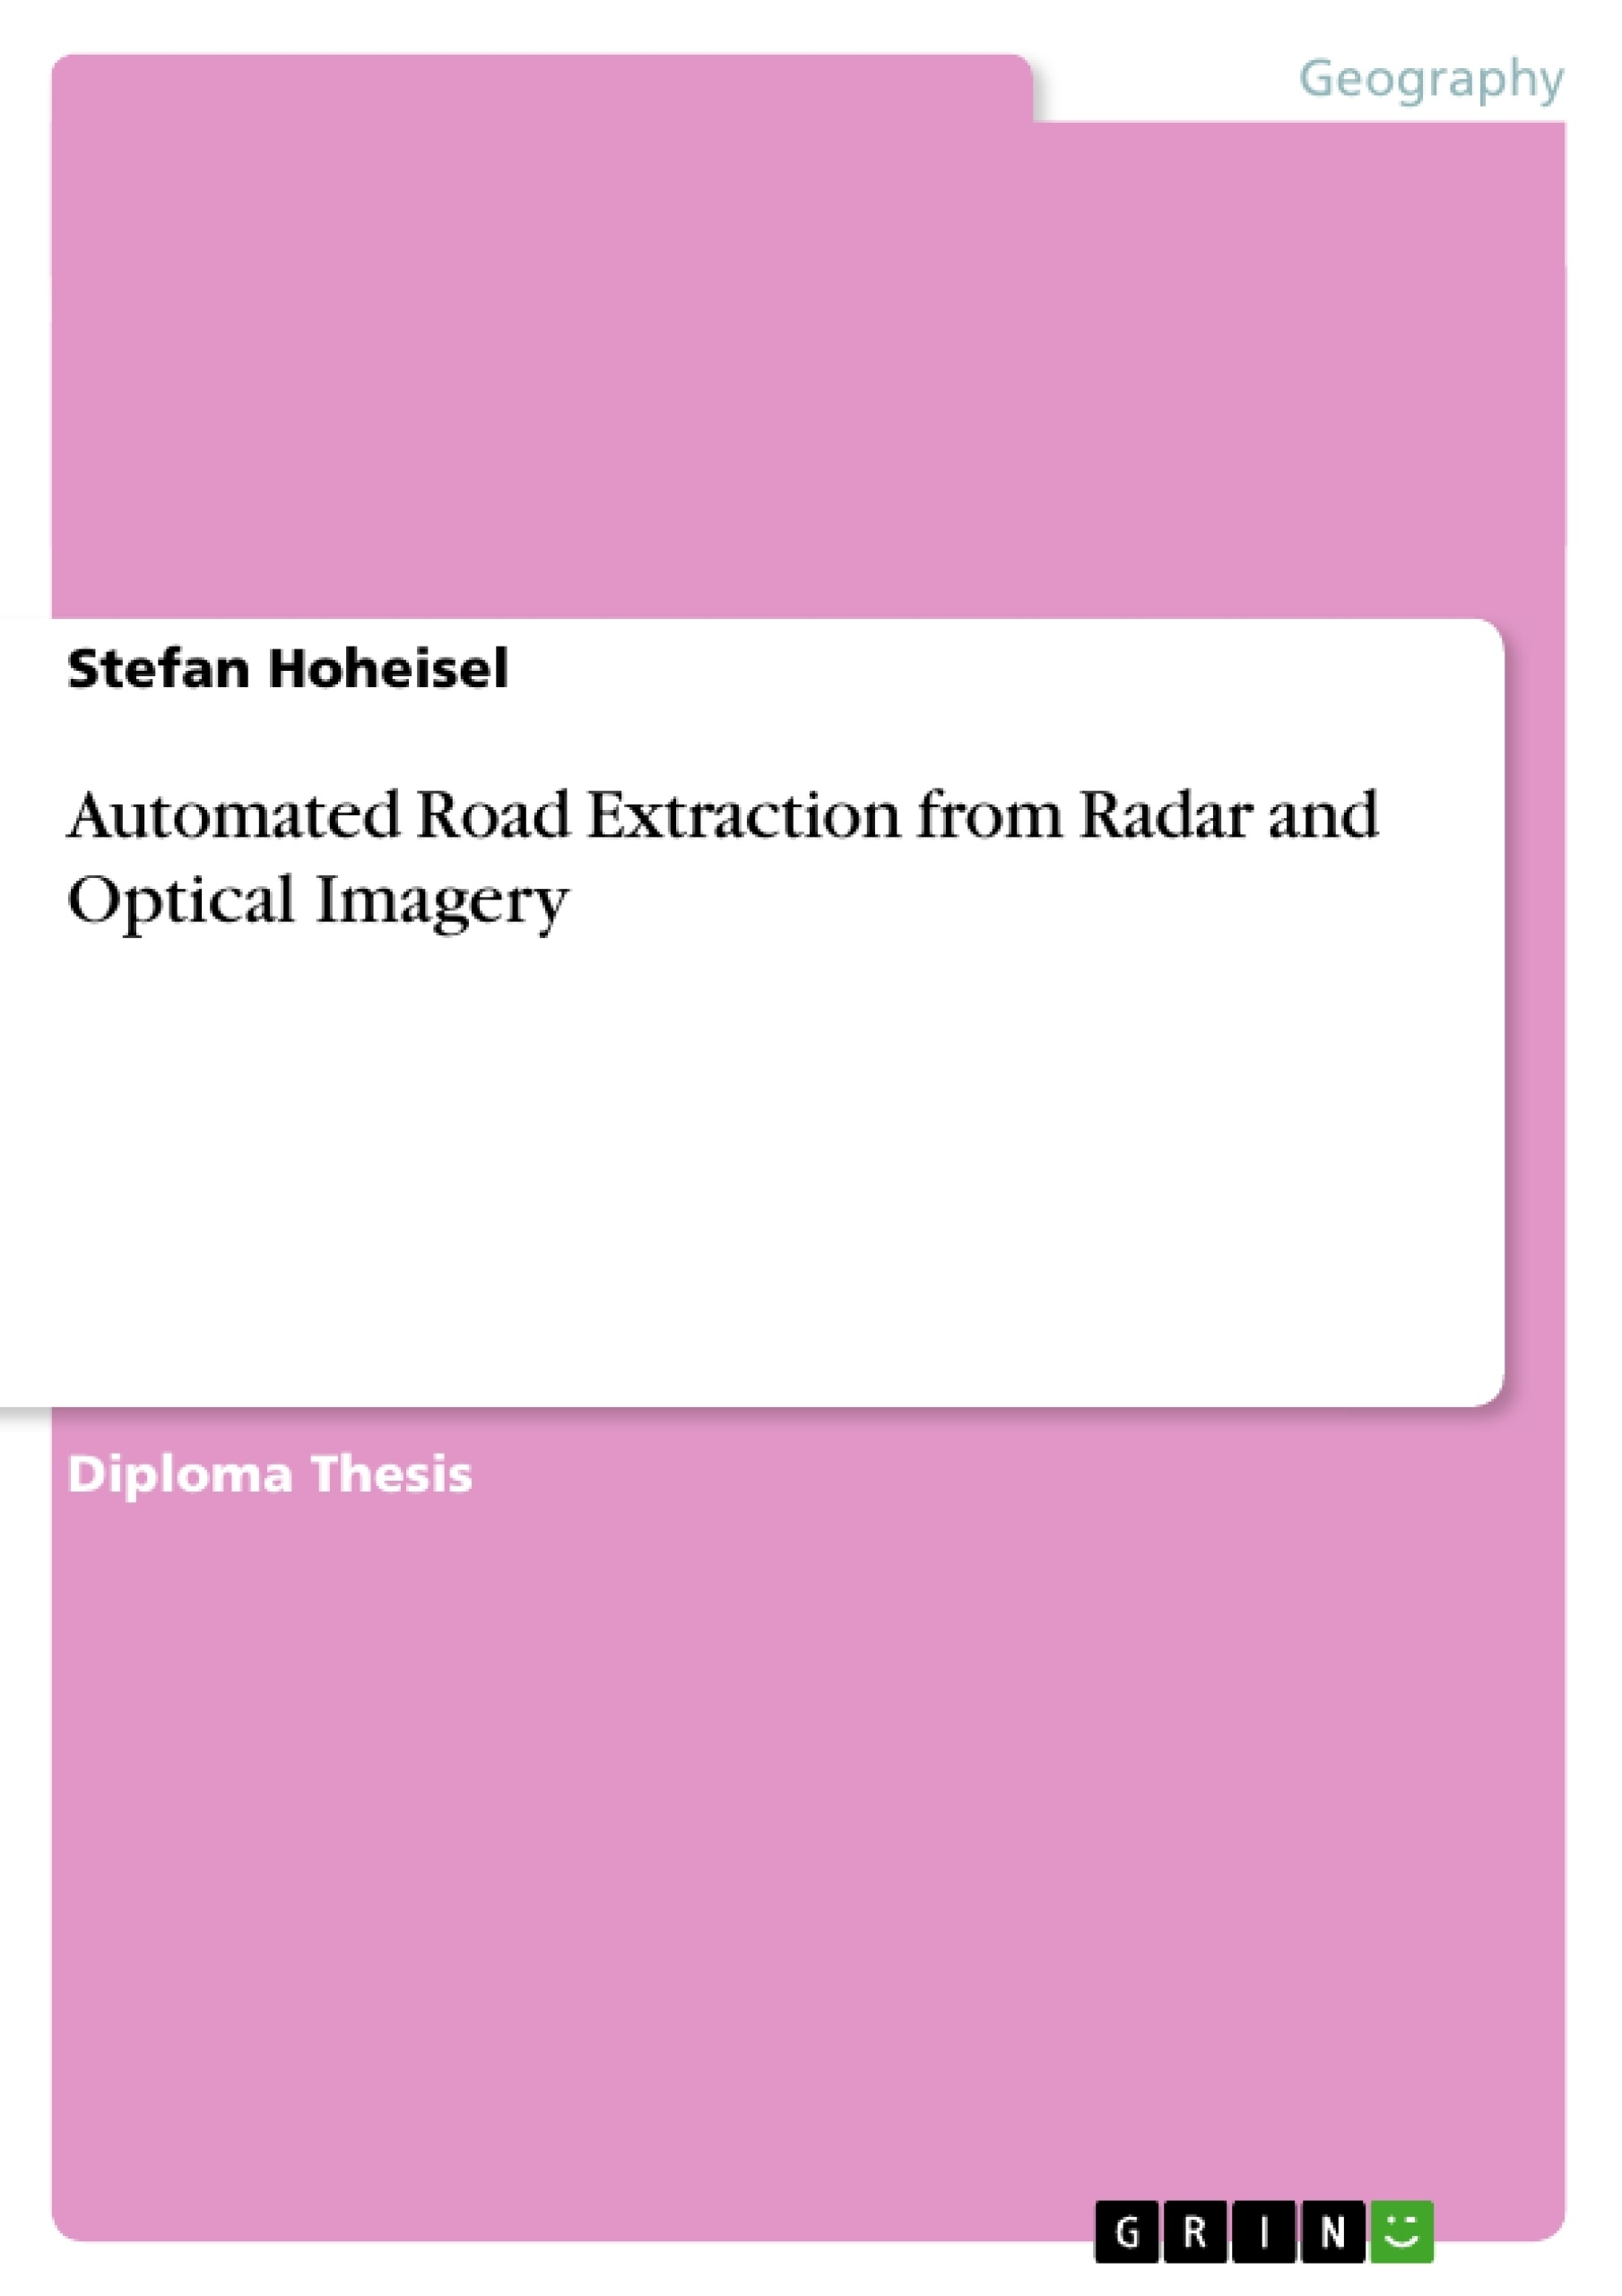 Title: Automated Road Extraction from Radar and Optical Imagery